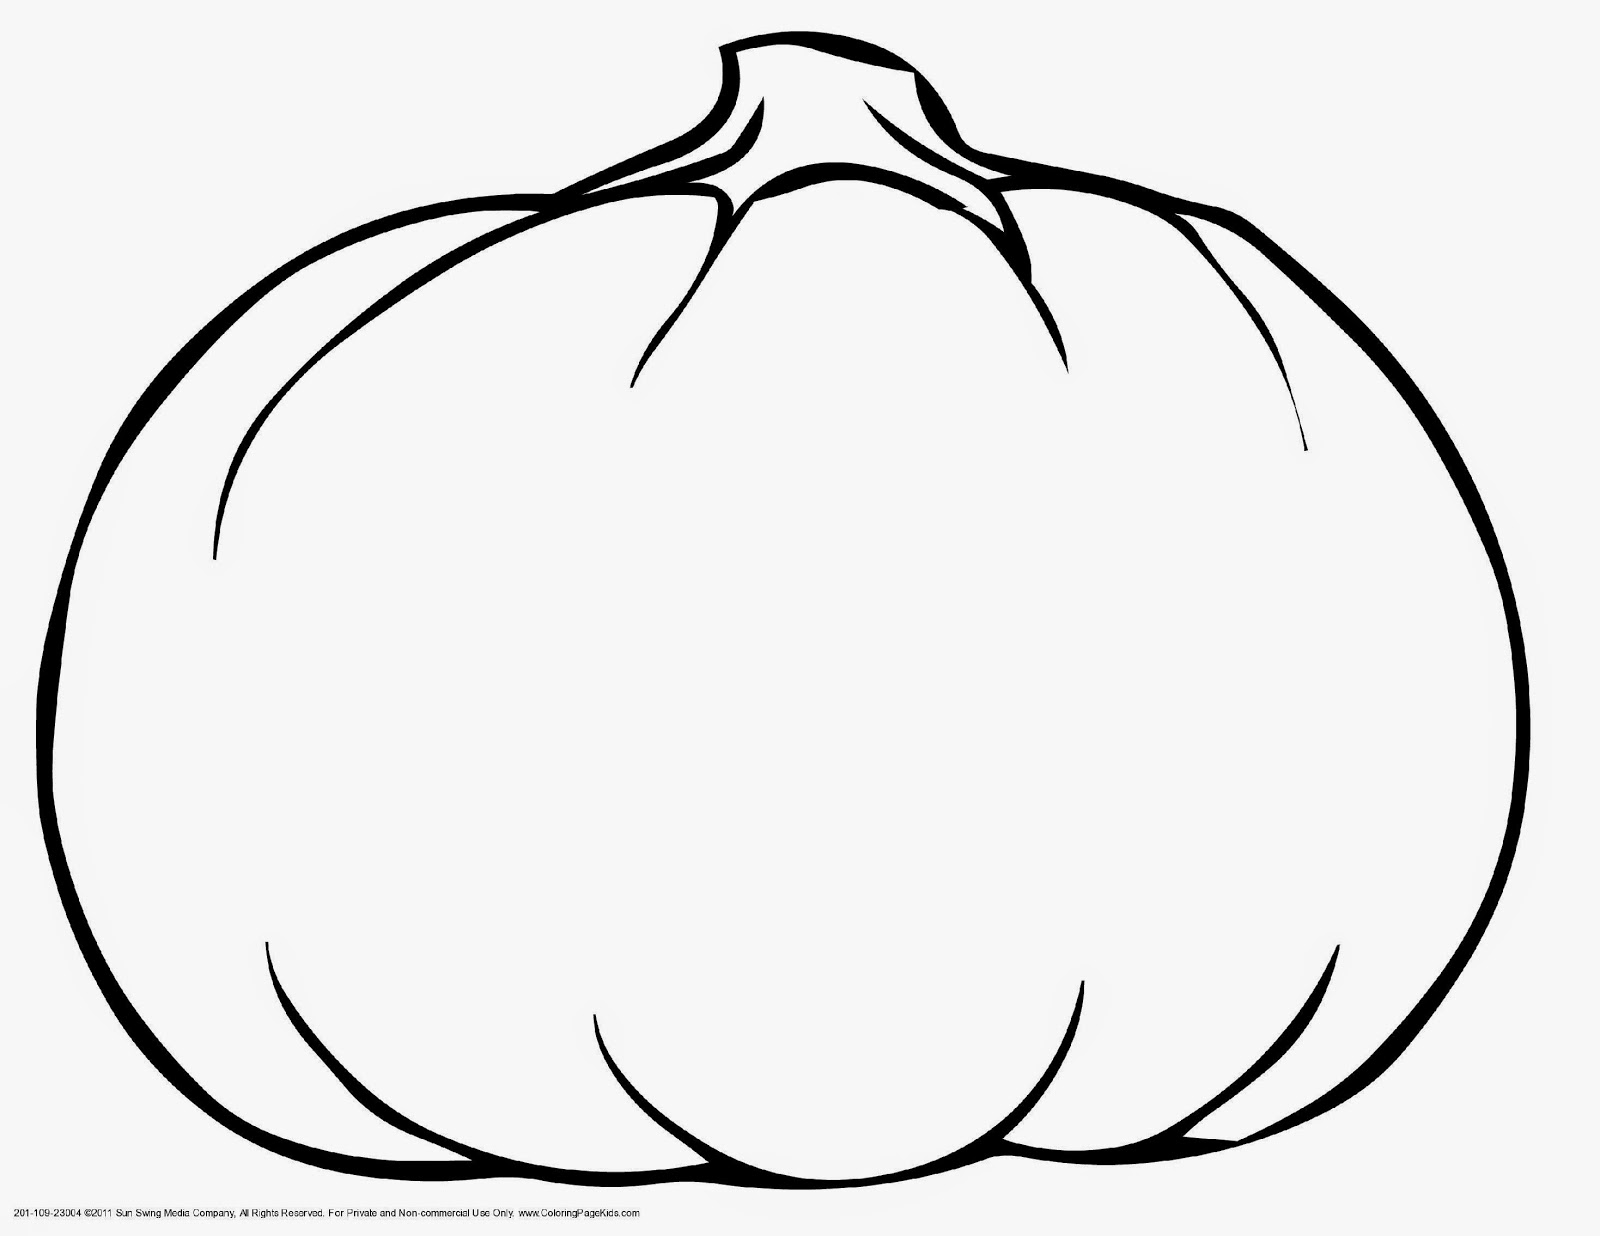 Pumpkin Monogram Clipart Black And White 20 Free Cliparts